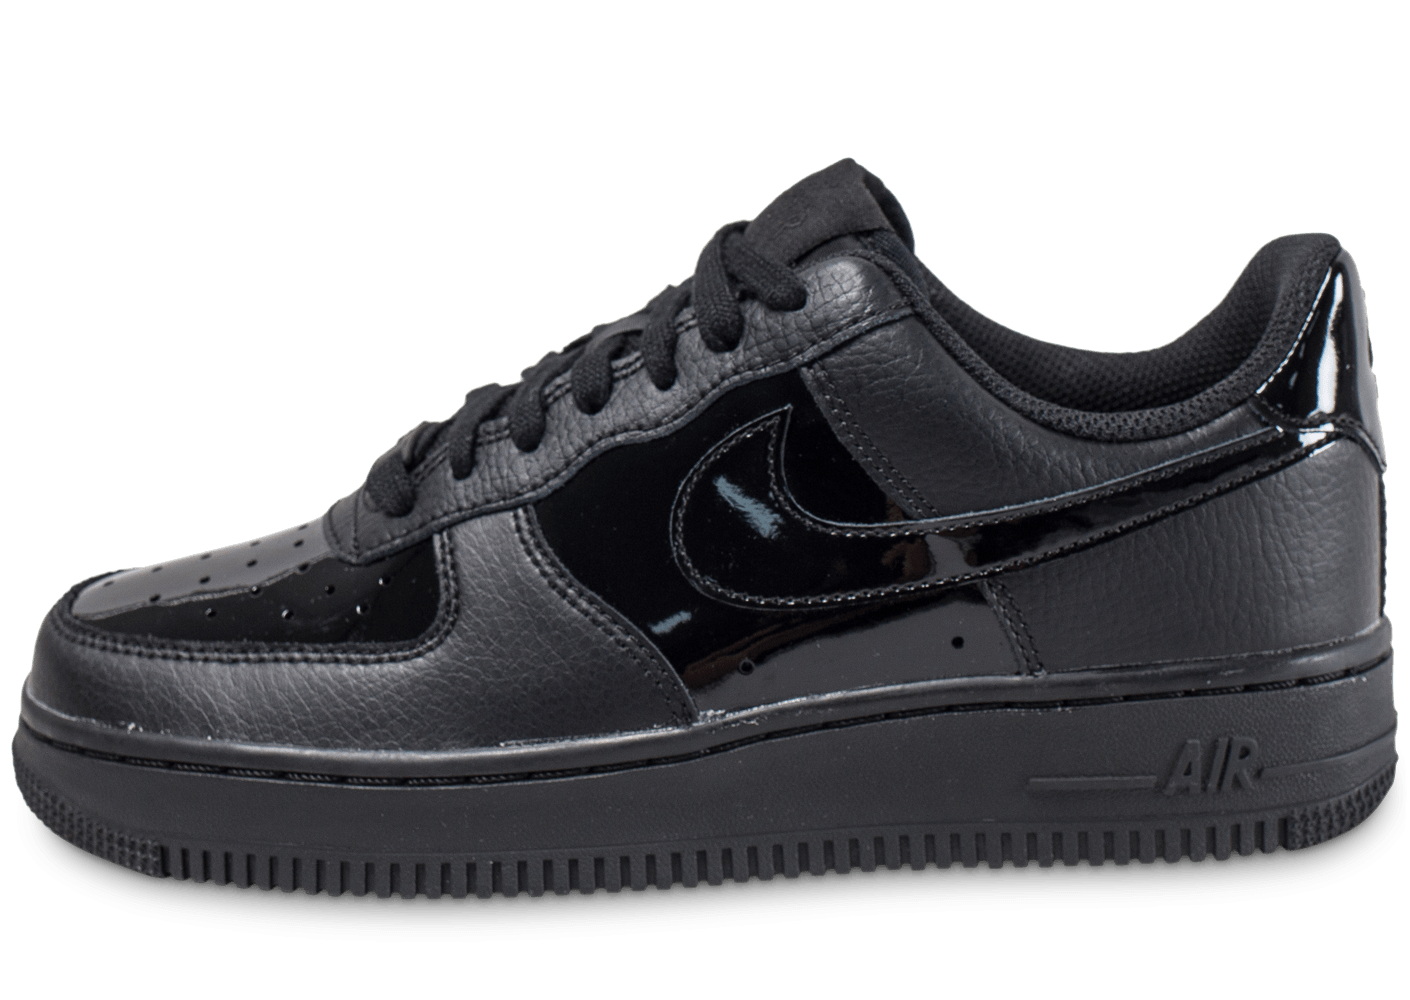 nike air force 1 39 07 w vernis noire patent chaussures. Black Bedroom Furniture Sets. Home Design Ideas